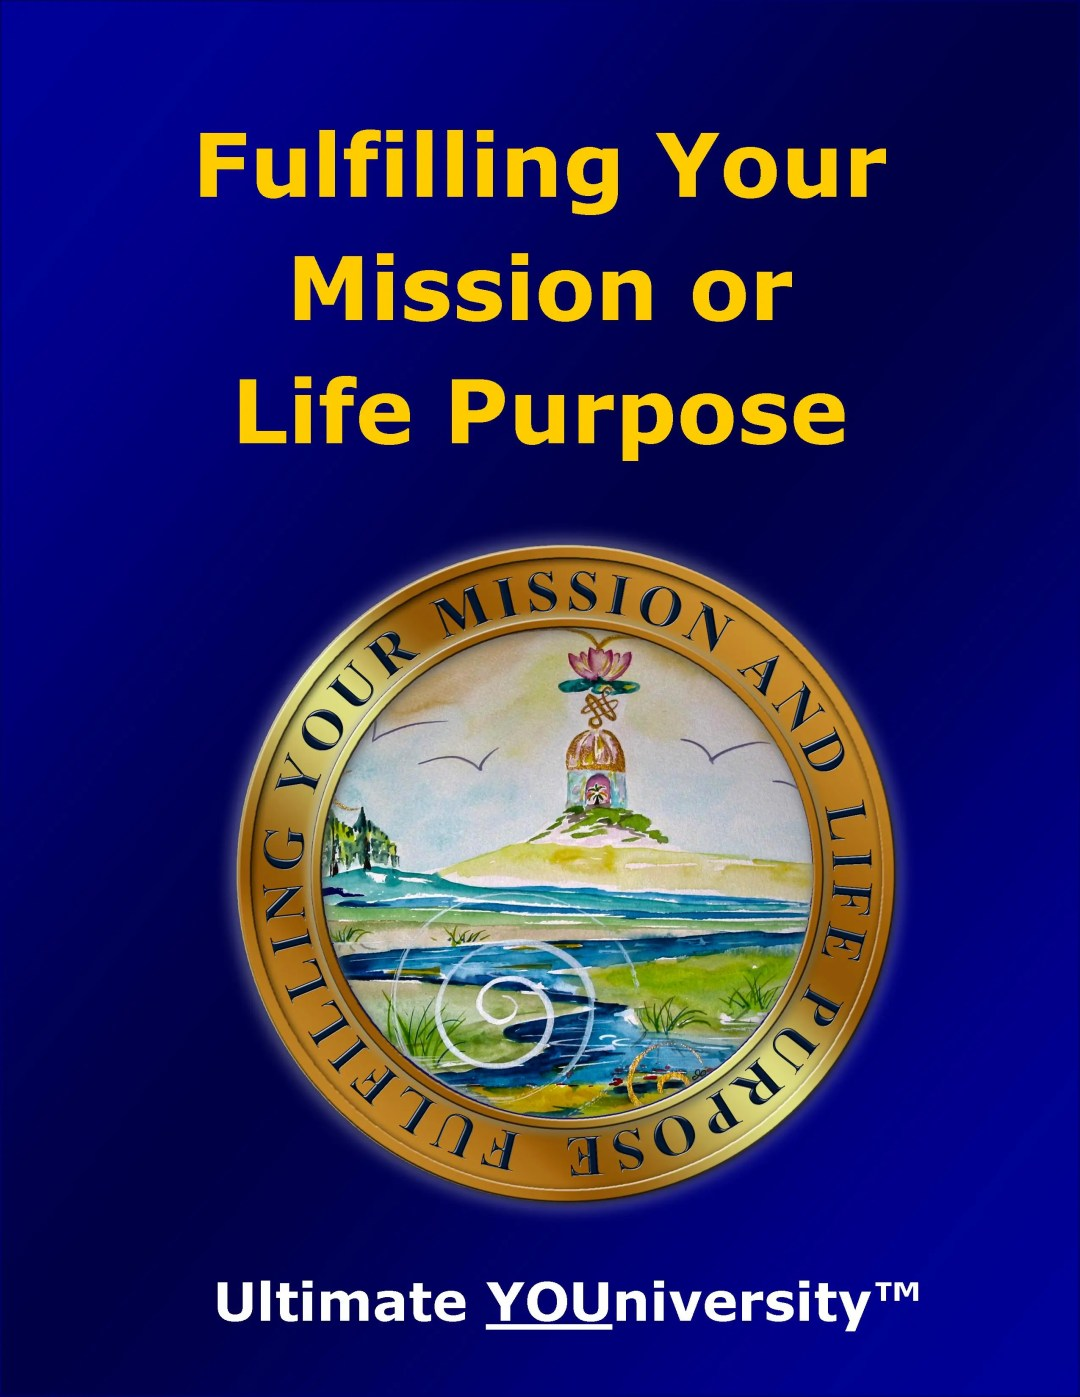 Fulfilling Your Mission or Life Purpose, one of the 14 Categories